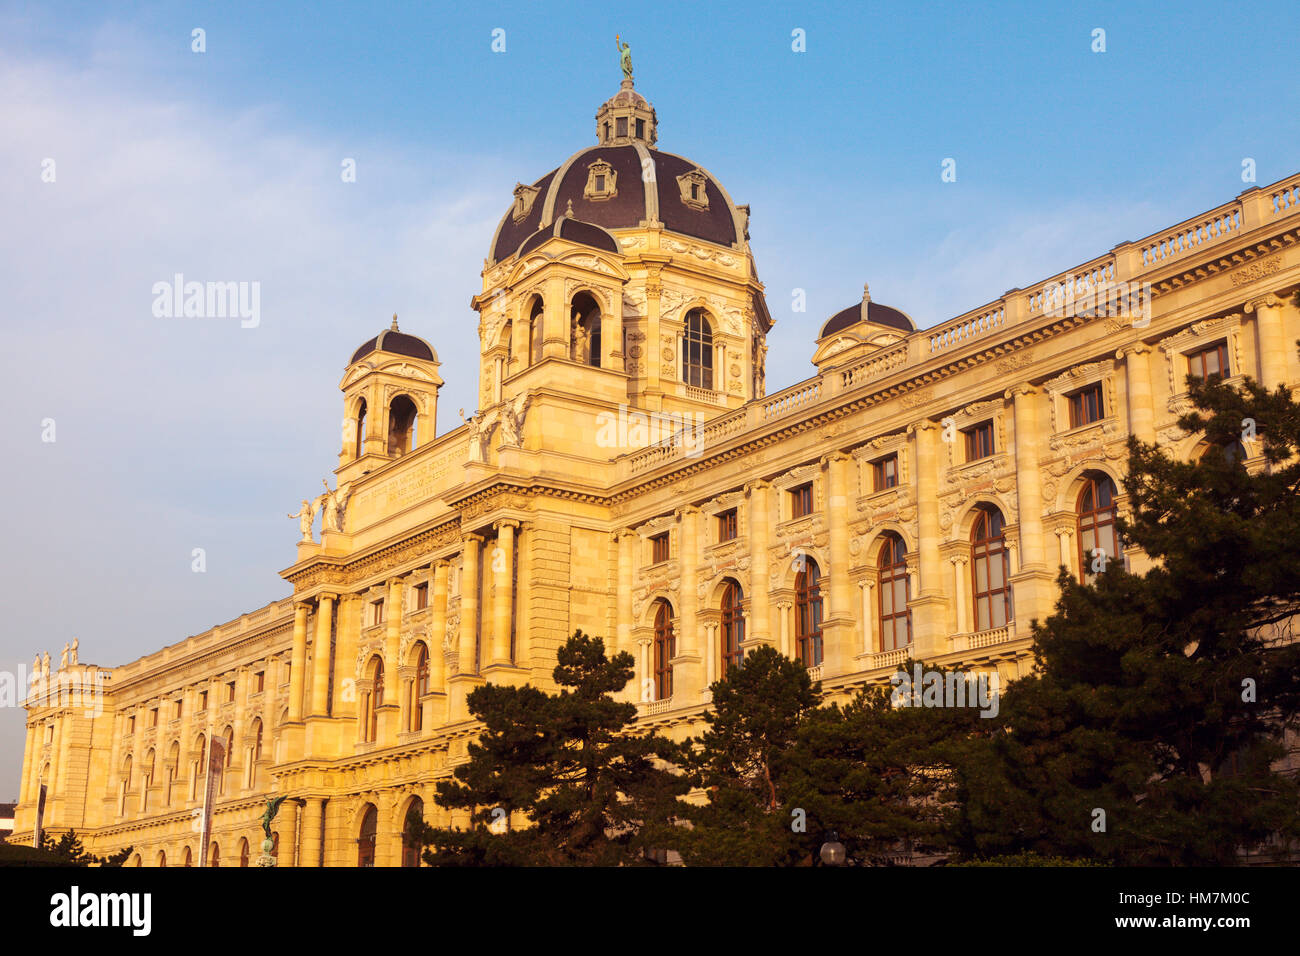 Austria, Vienna, Museum of Natural History on Maria Theresa Square - Stock Image